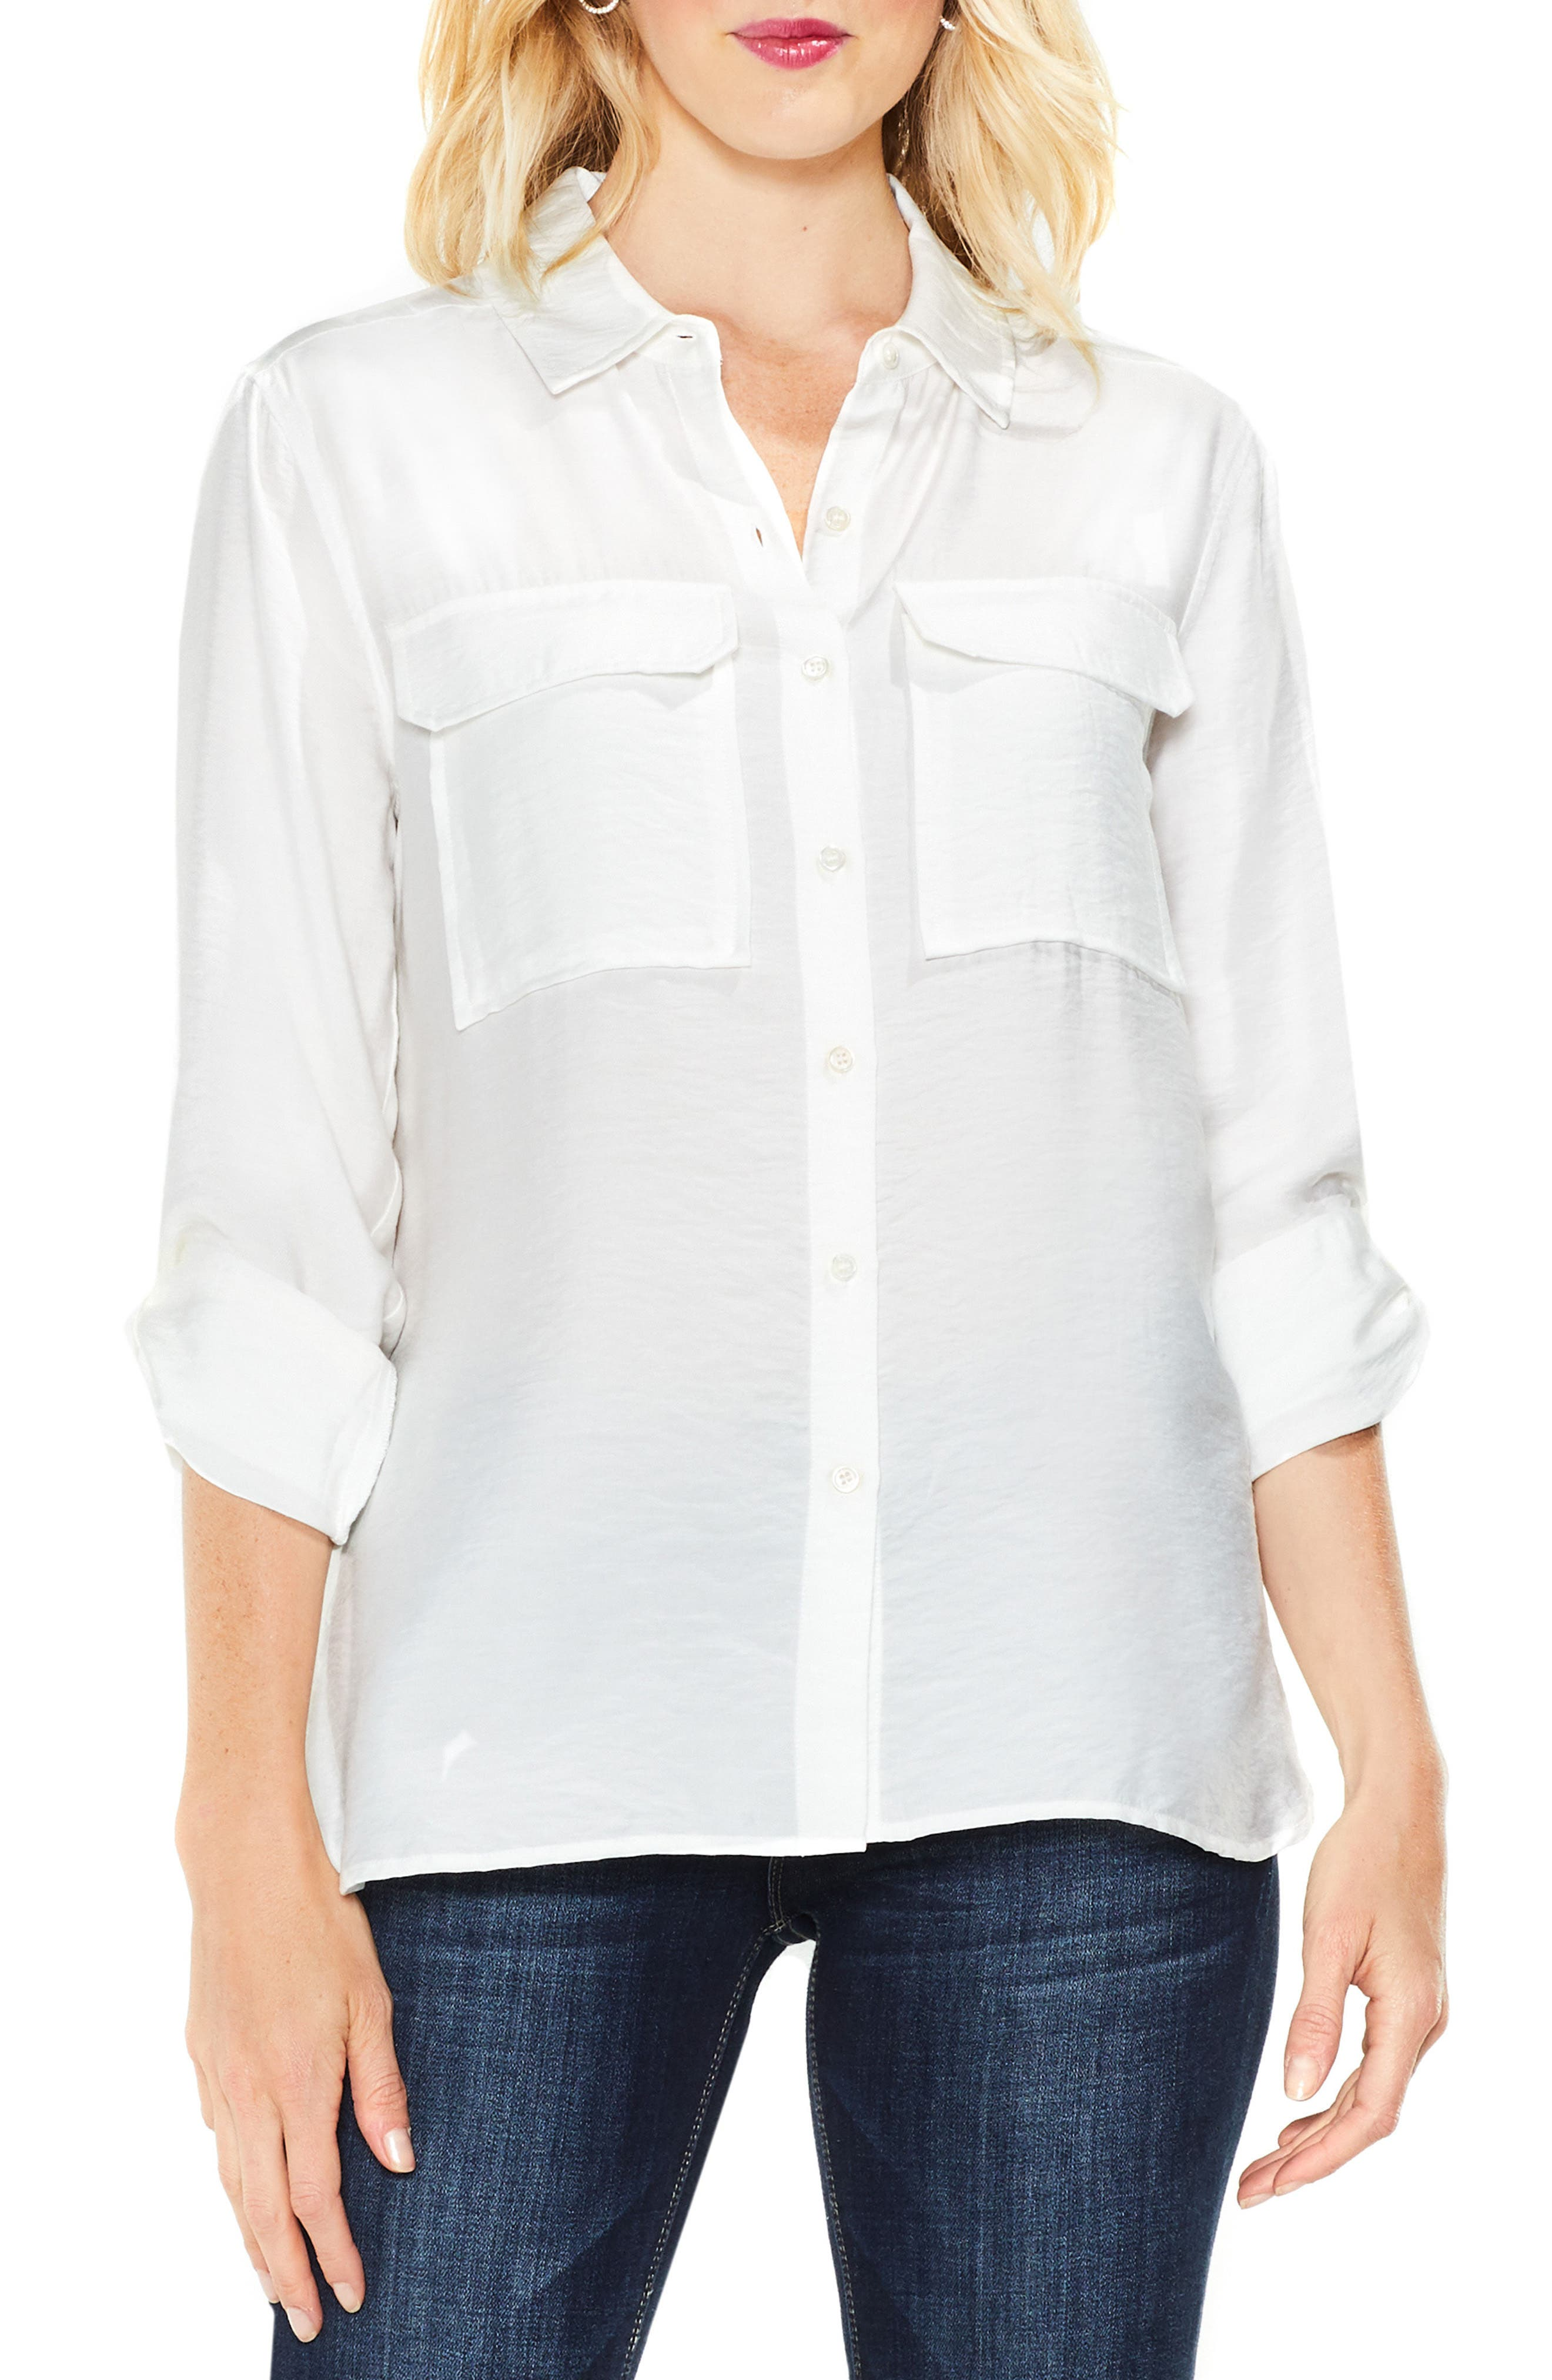 Main Image - Two by Vince Camuto Hammered Satin Utility Shirt (Regular & Petite)